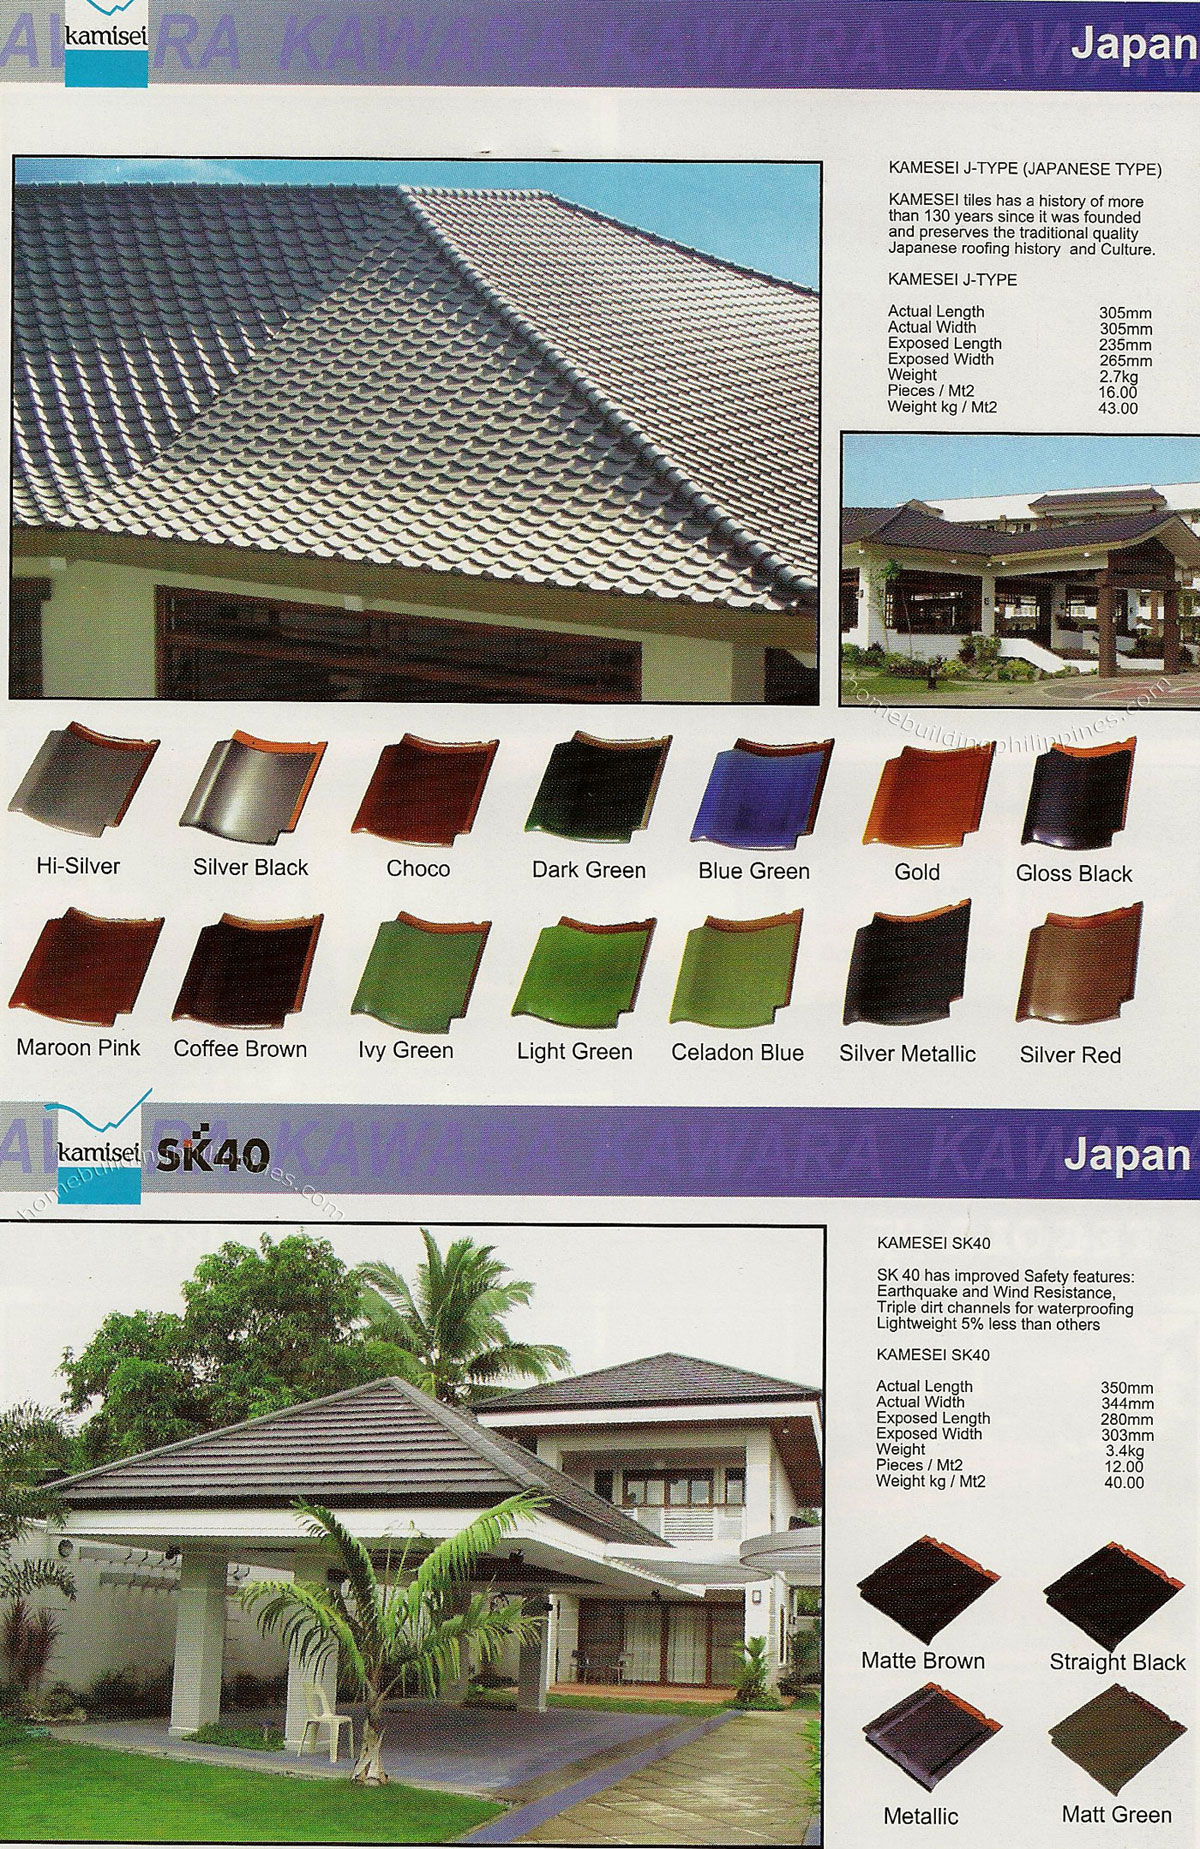 08 Kamiset Japanese Style Roofing Tiles ROOF STYLE IN THE PHILIPPINES